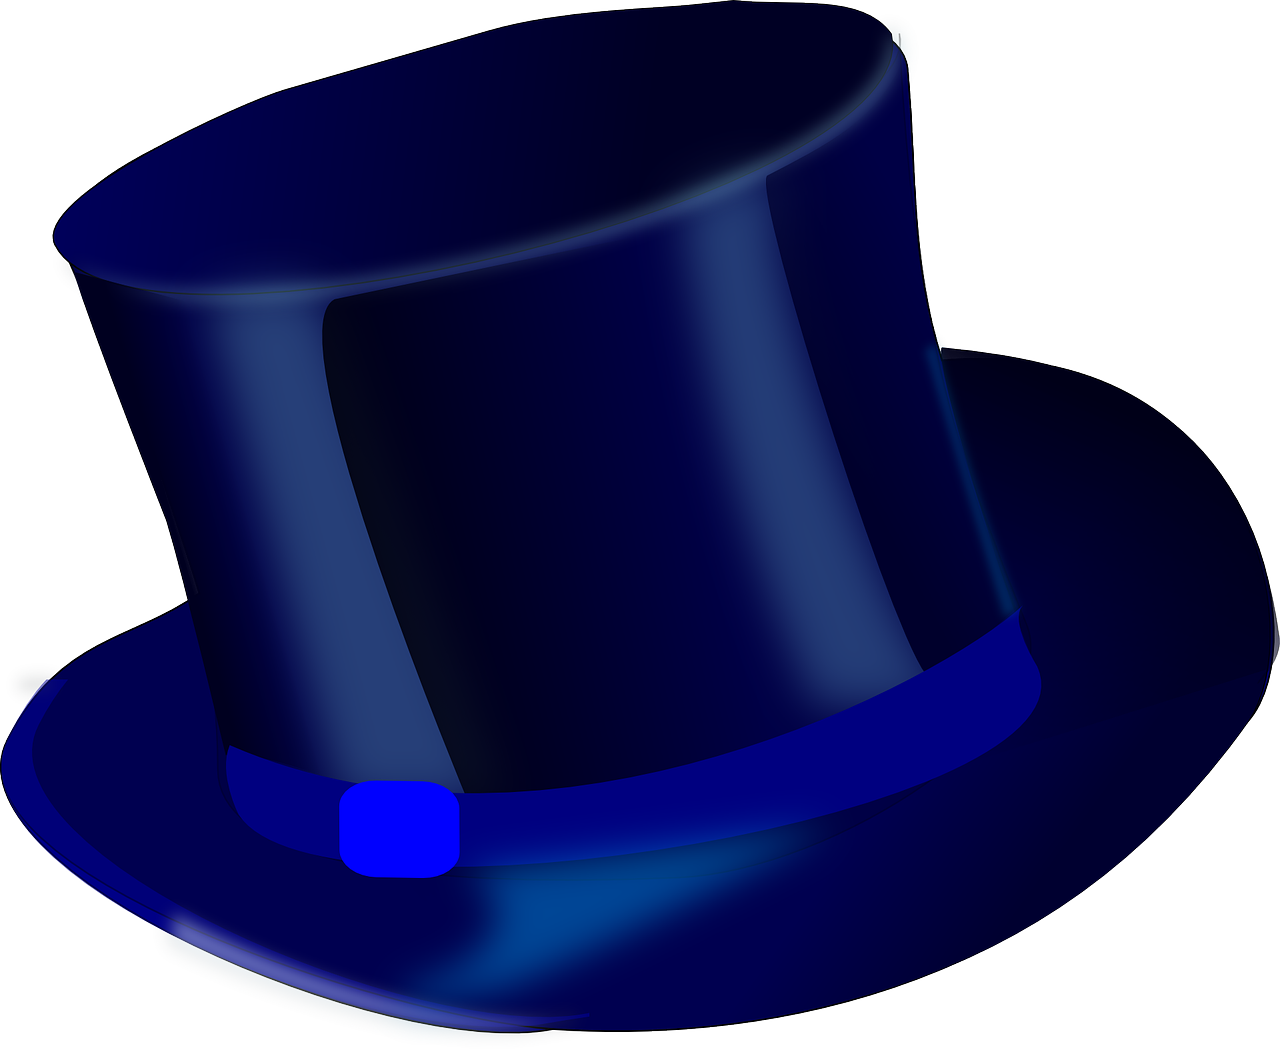 Top Hat Stovepipe Hat Topper Cap PNG   Picpng